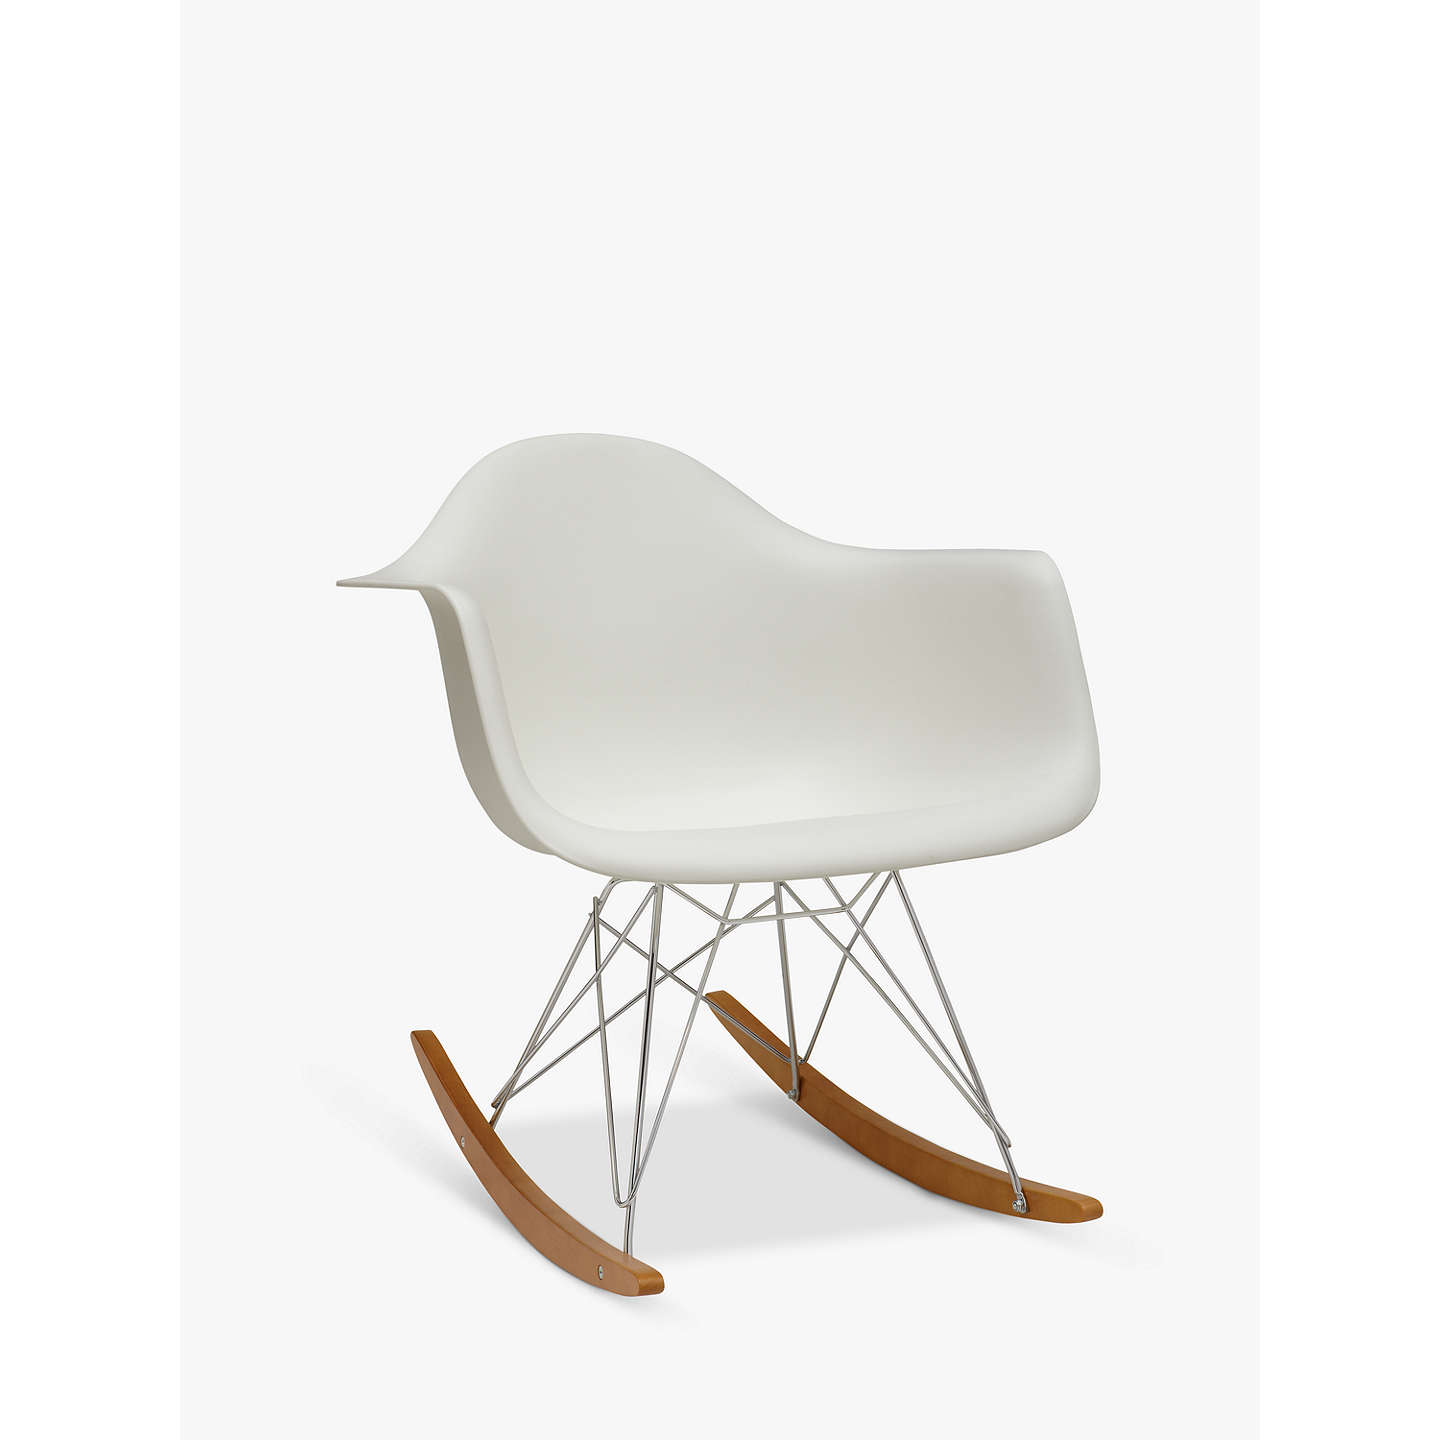 Vitra eames rar rocking chair white at john lewis - Rocking chair vitra ...